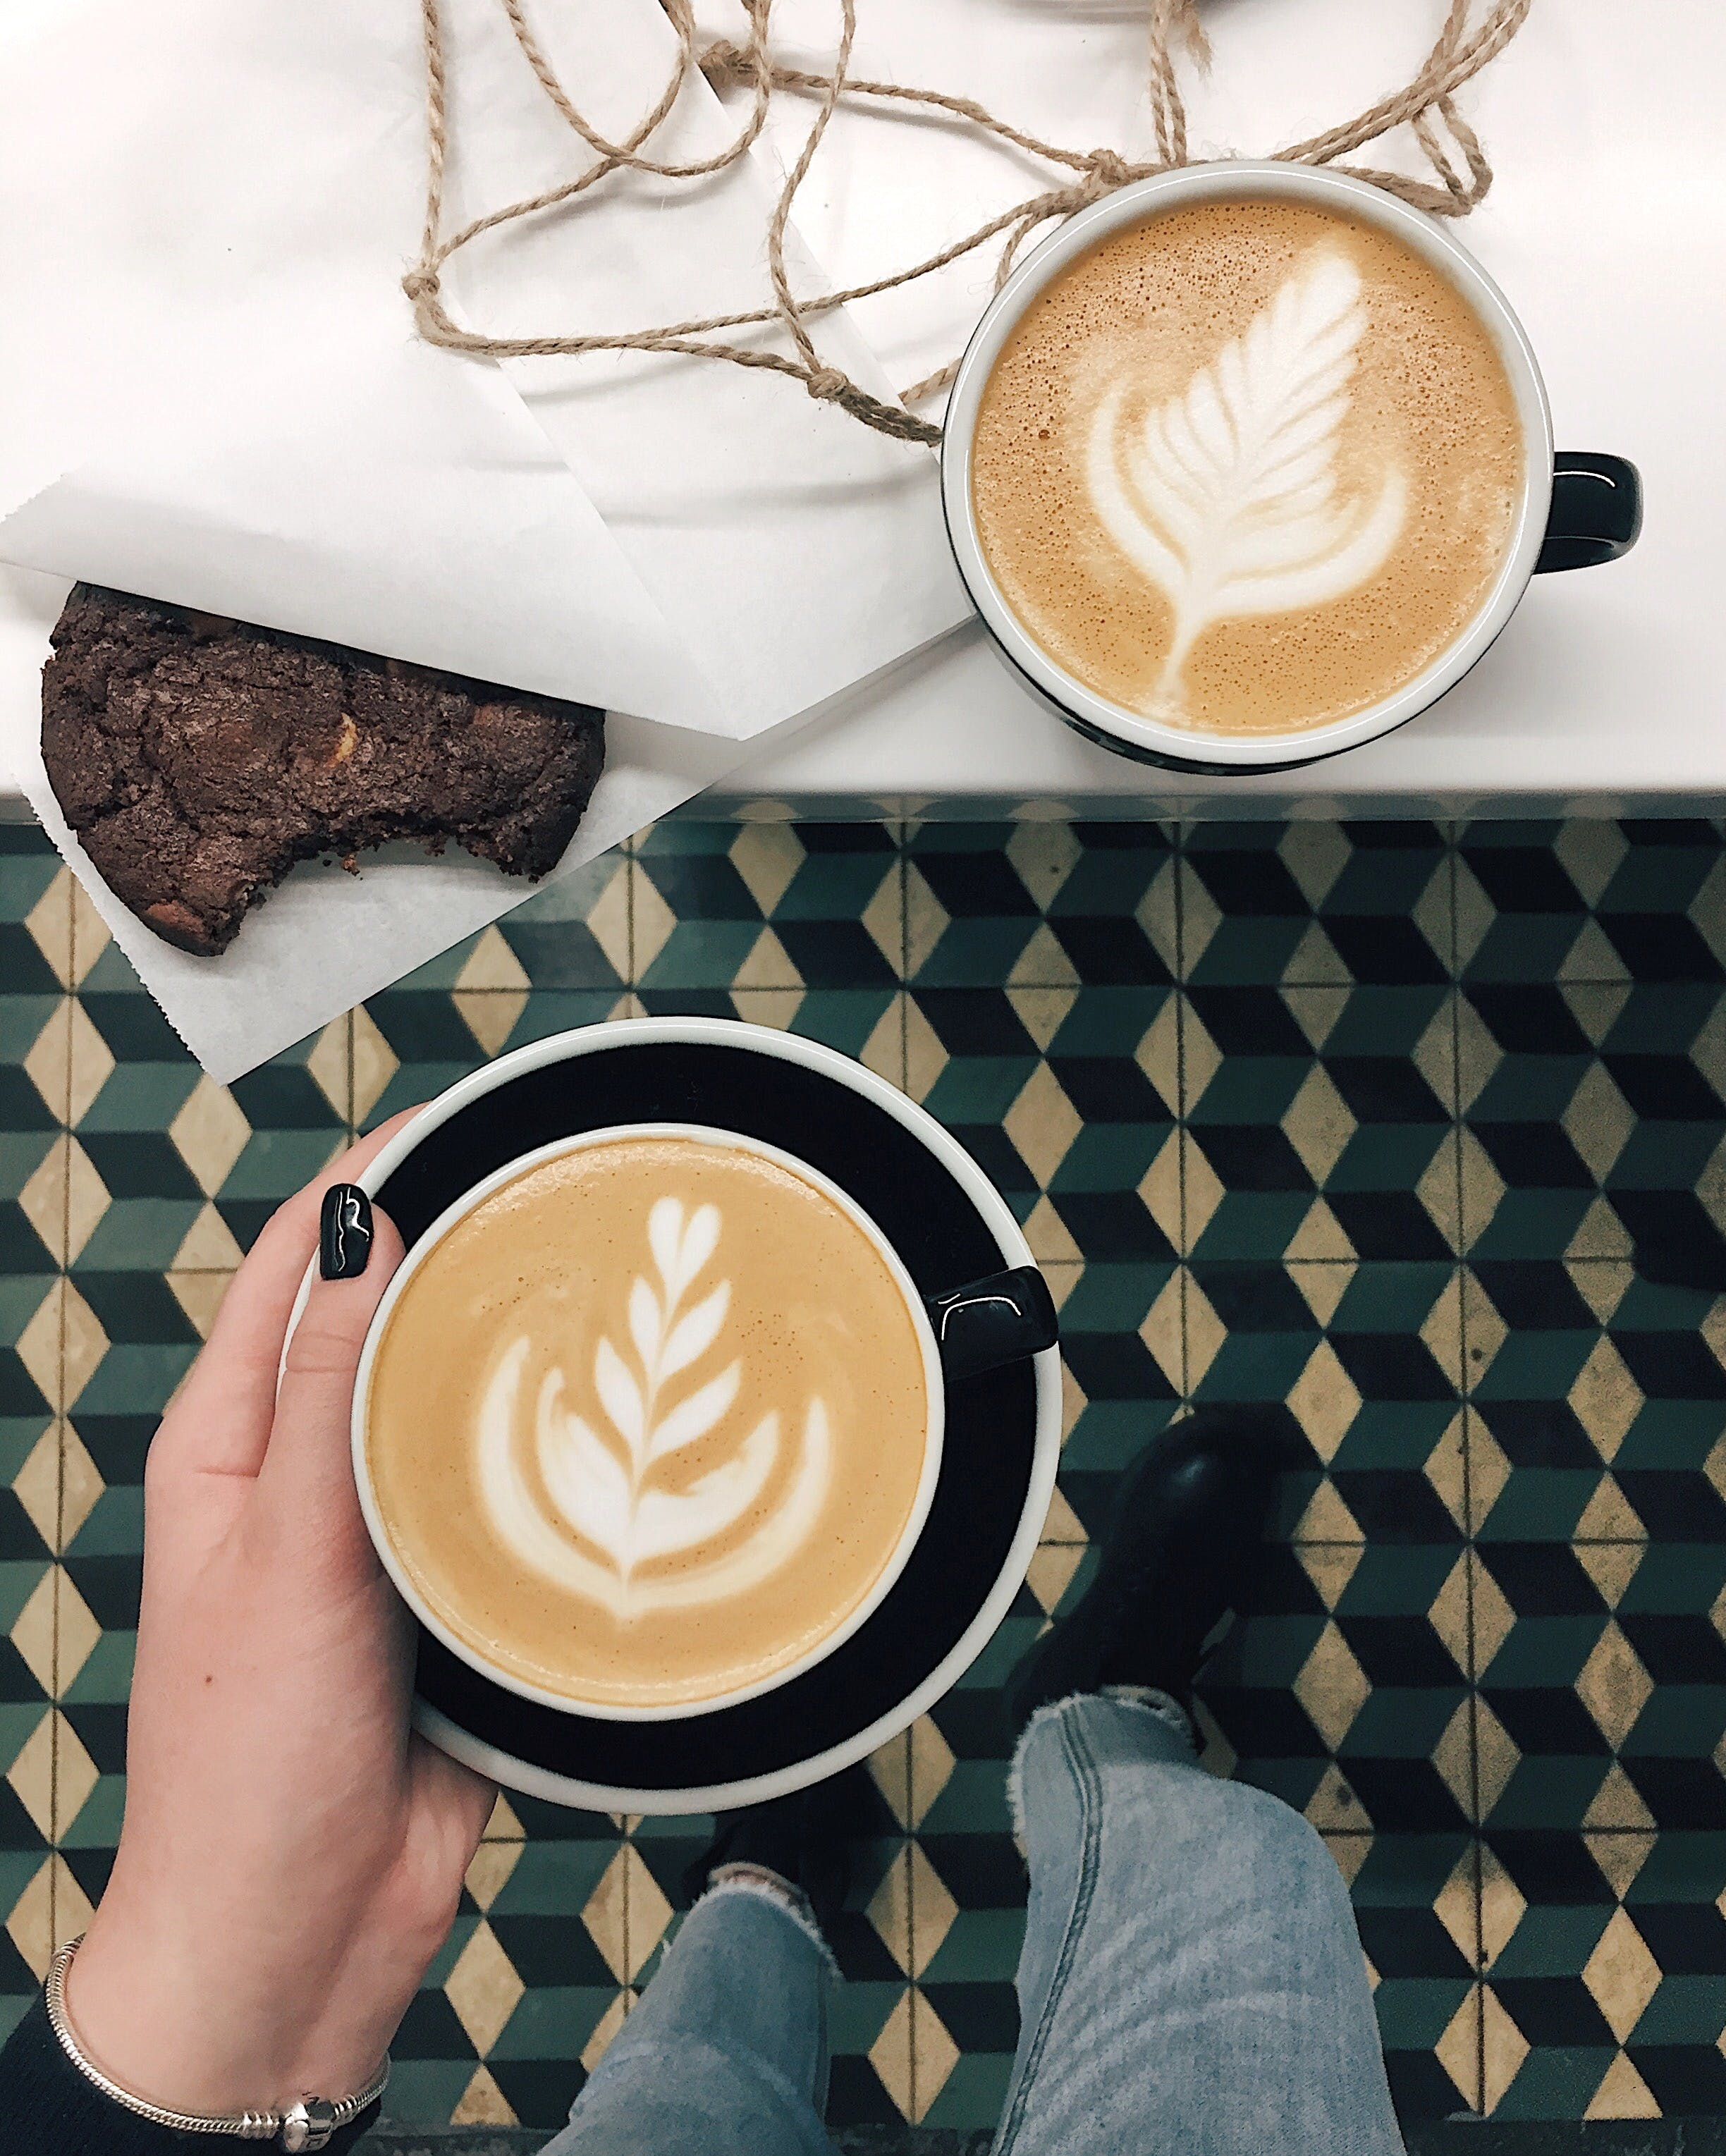 Two Cups of Cappuccinos With Chocolate Cookie on Table